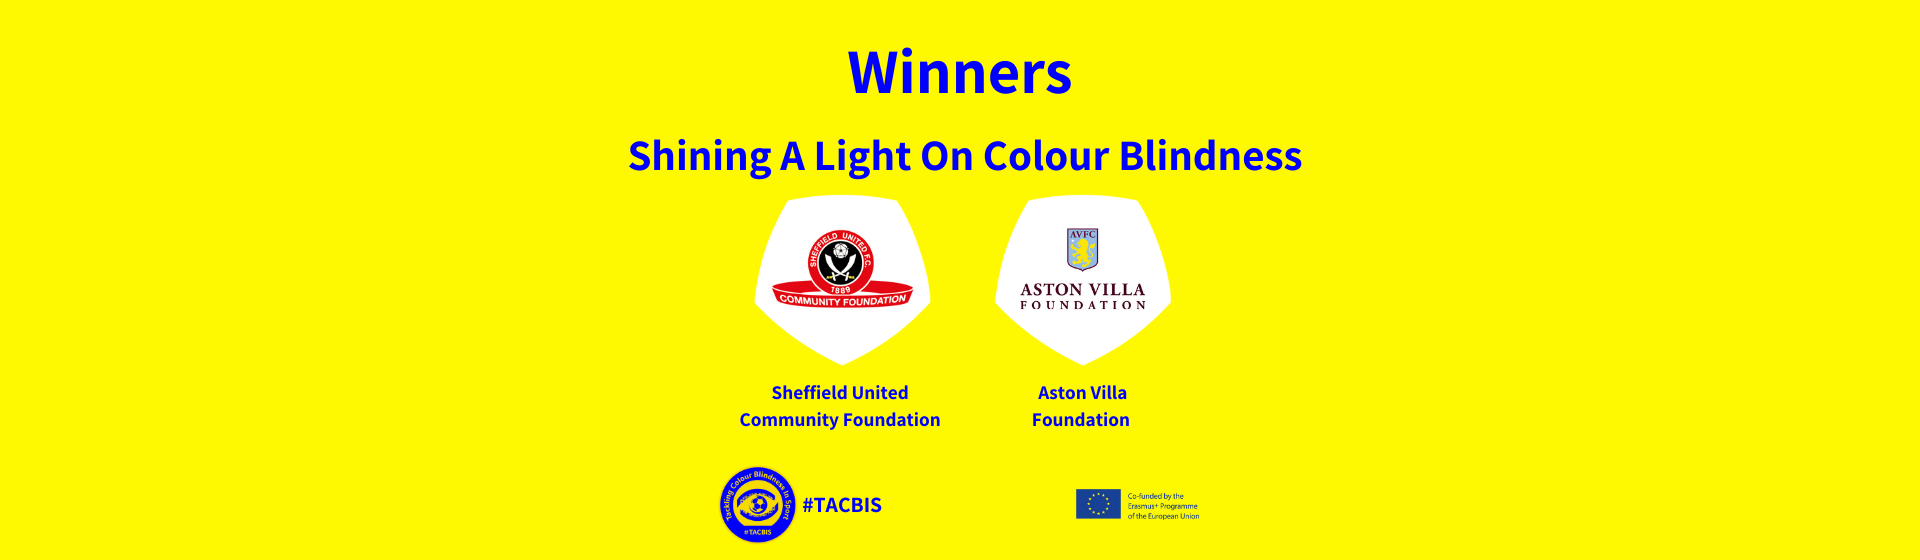 Aston Villa and Sheffield United winners of drawing competition header